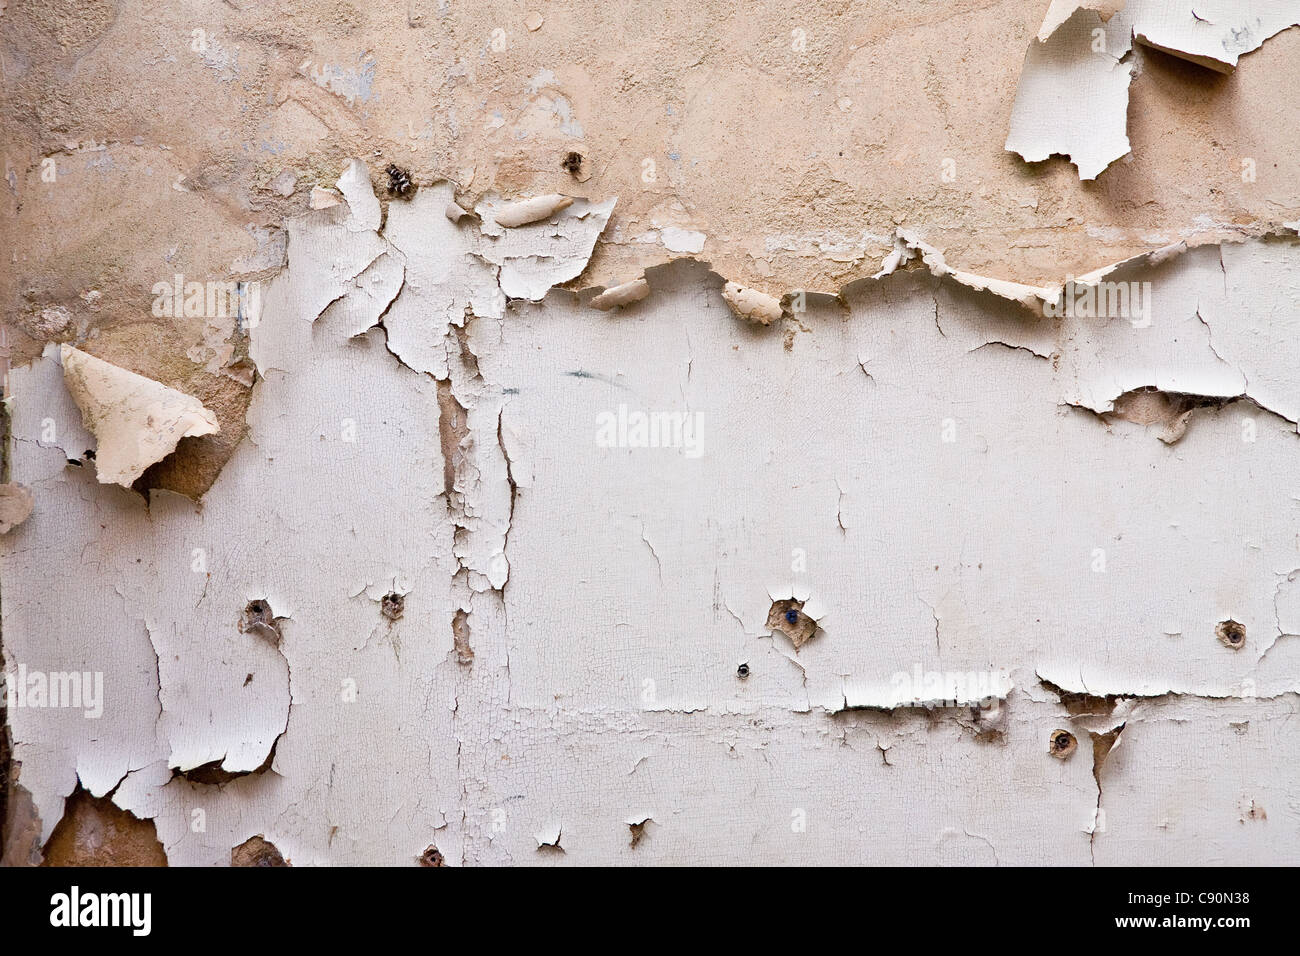 Paint Peeling Off Plaster Wall In A Derelict Building Stock Photo Royalty Free Image 39969196